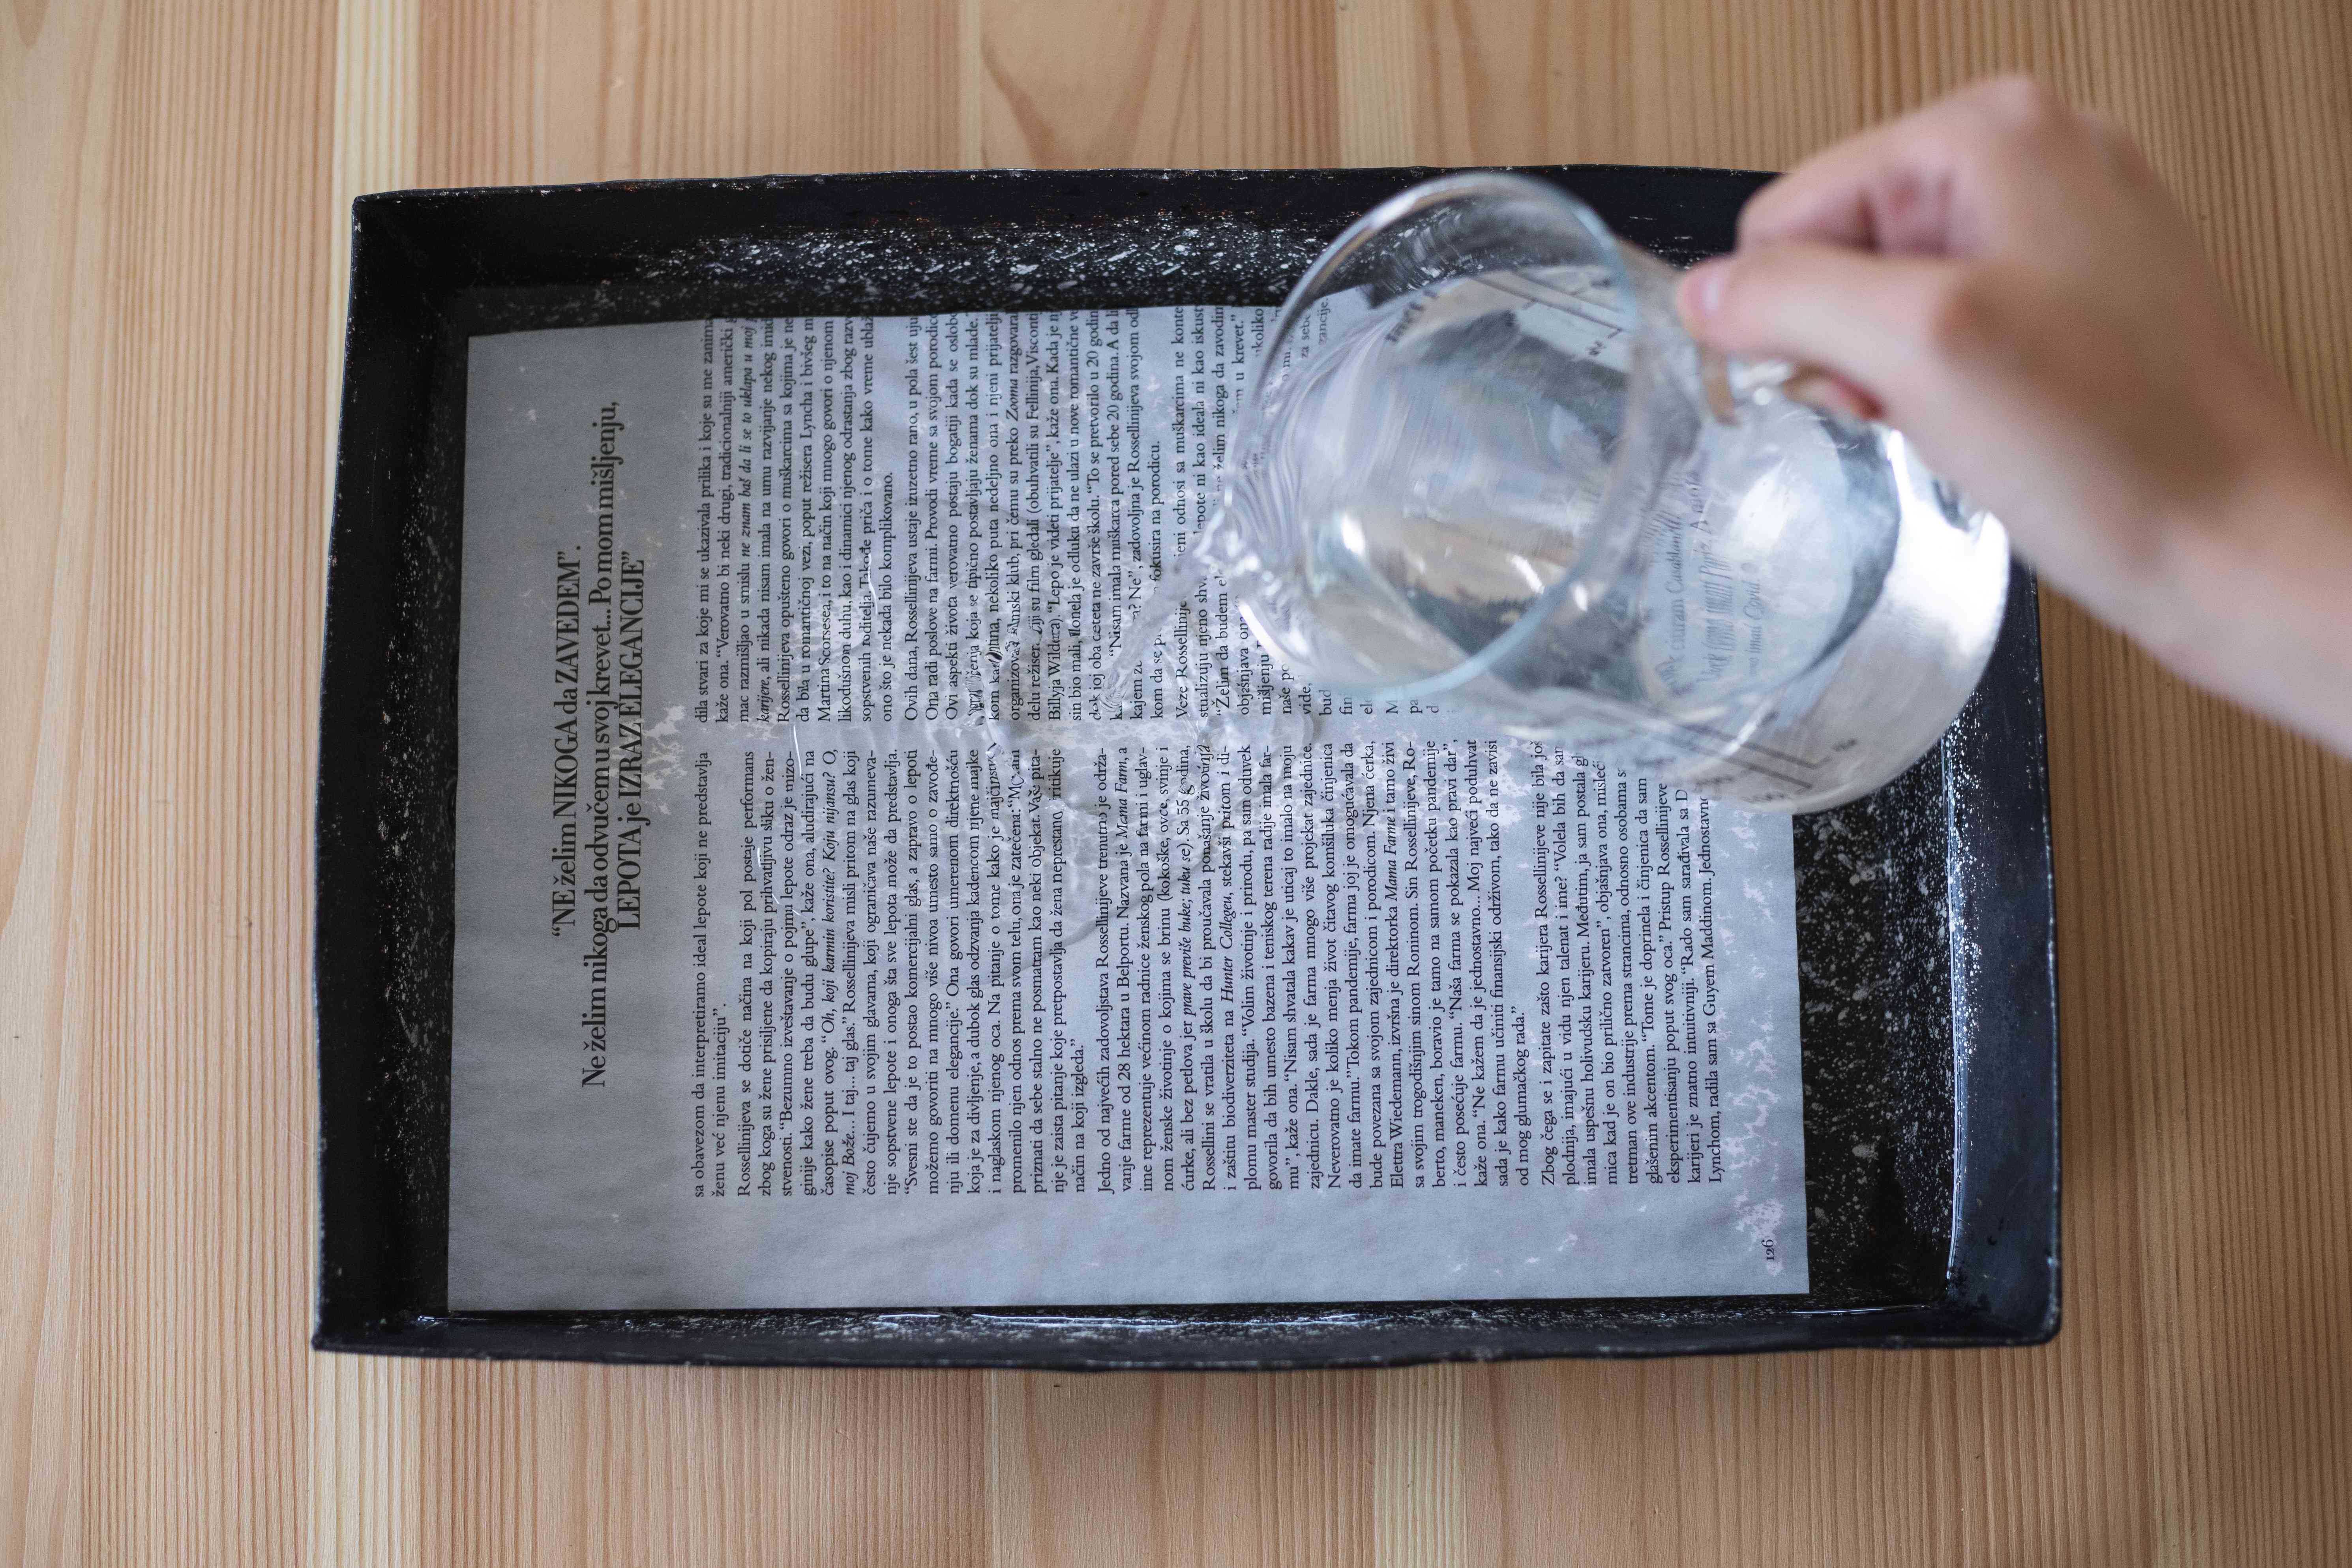 hand pours water on magazine page in tray to make sure it recycles